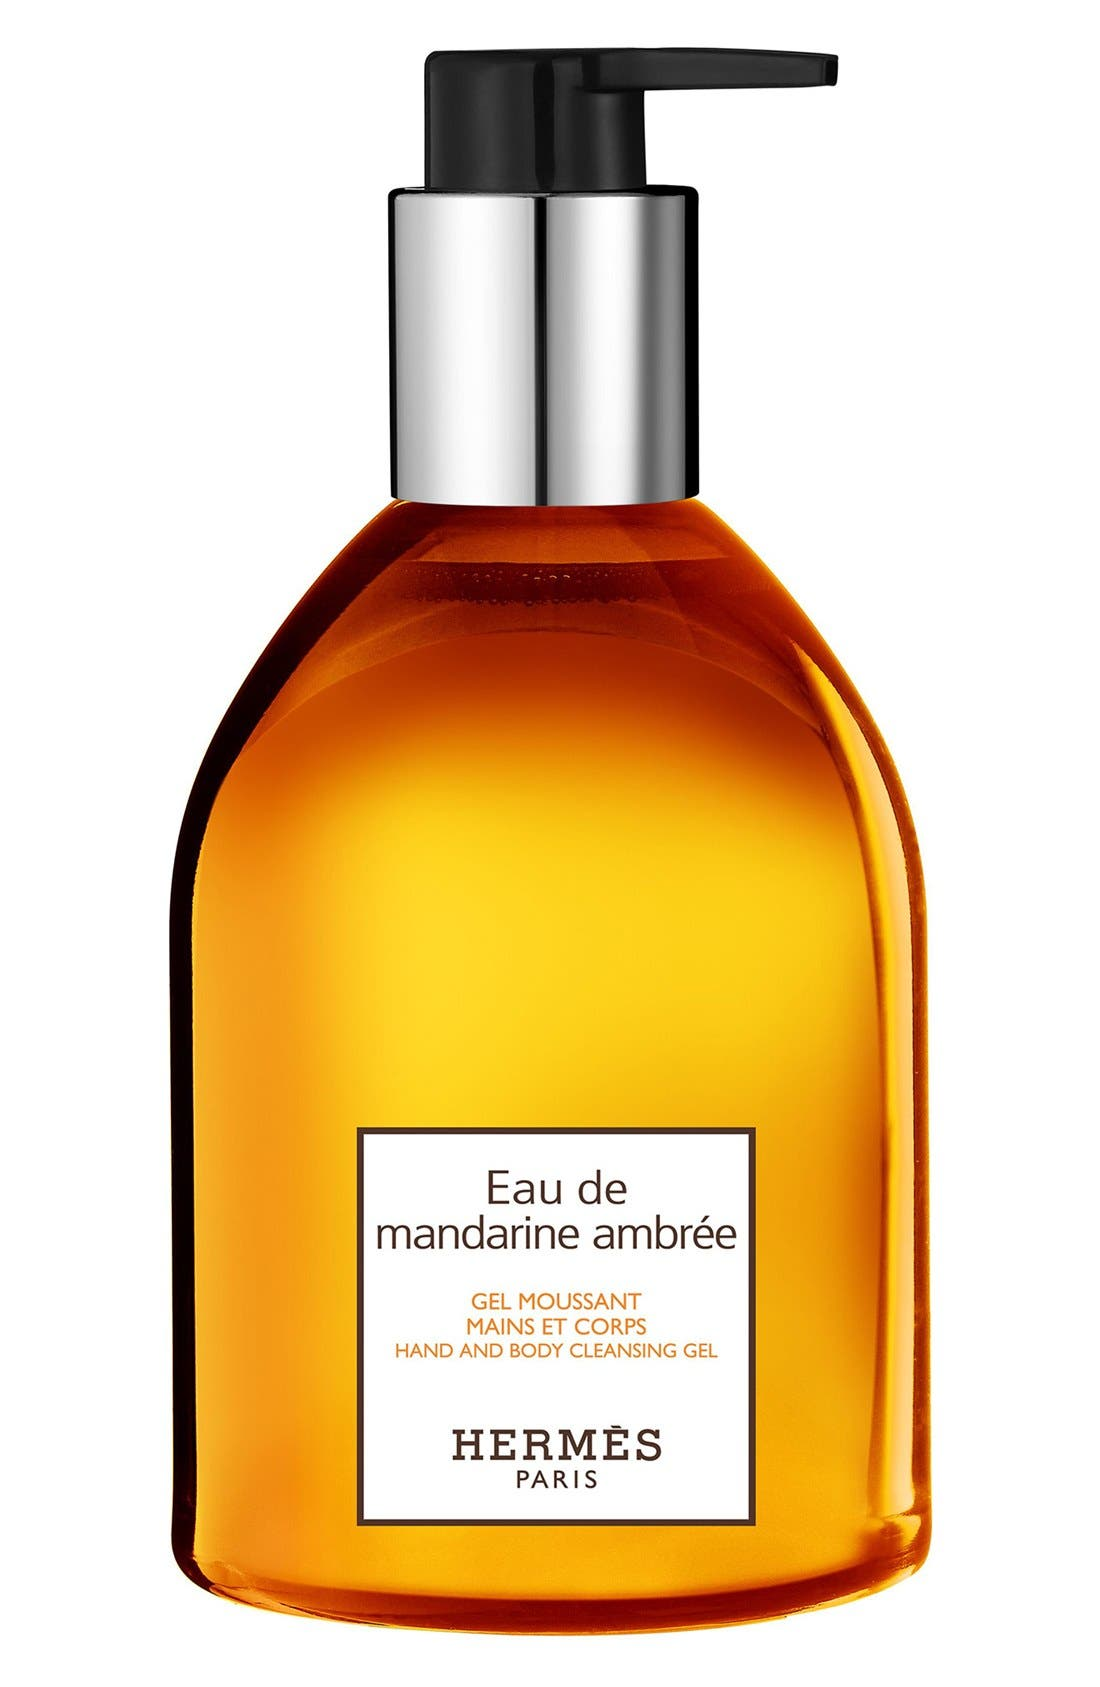 Hermès Eau de Mandarine Ambrée - Hand and body cleansing gel